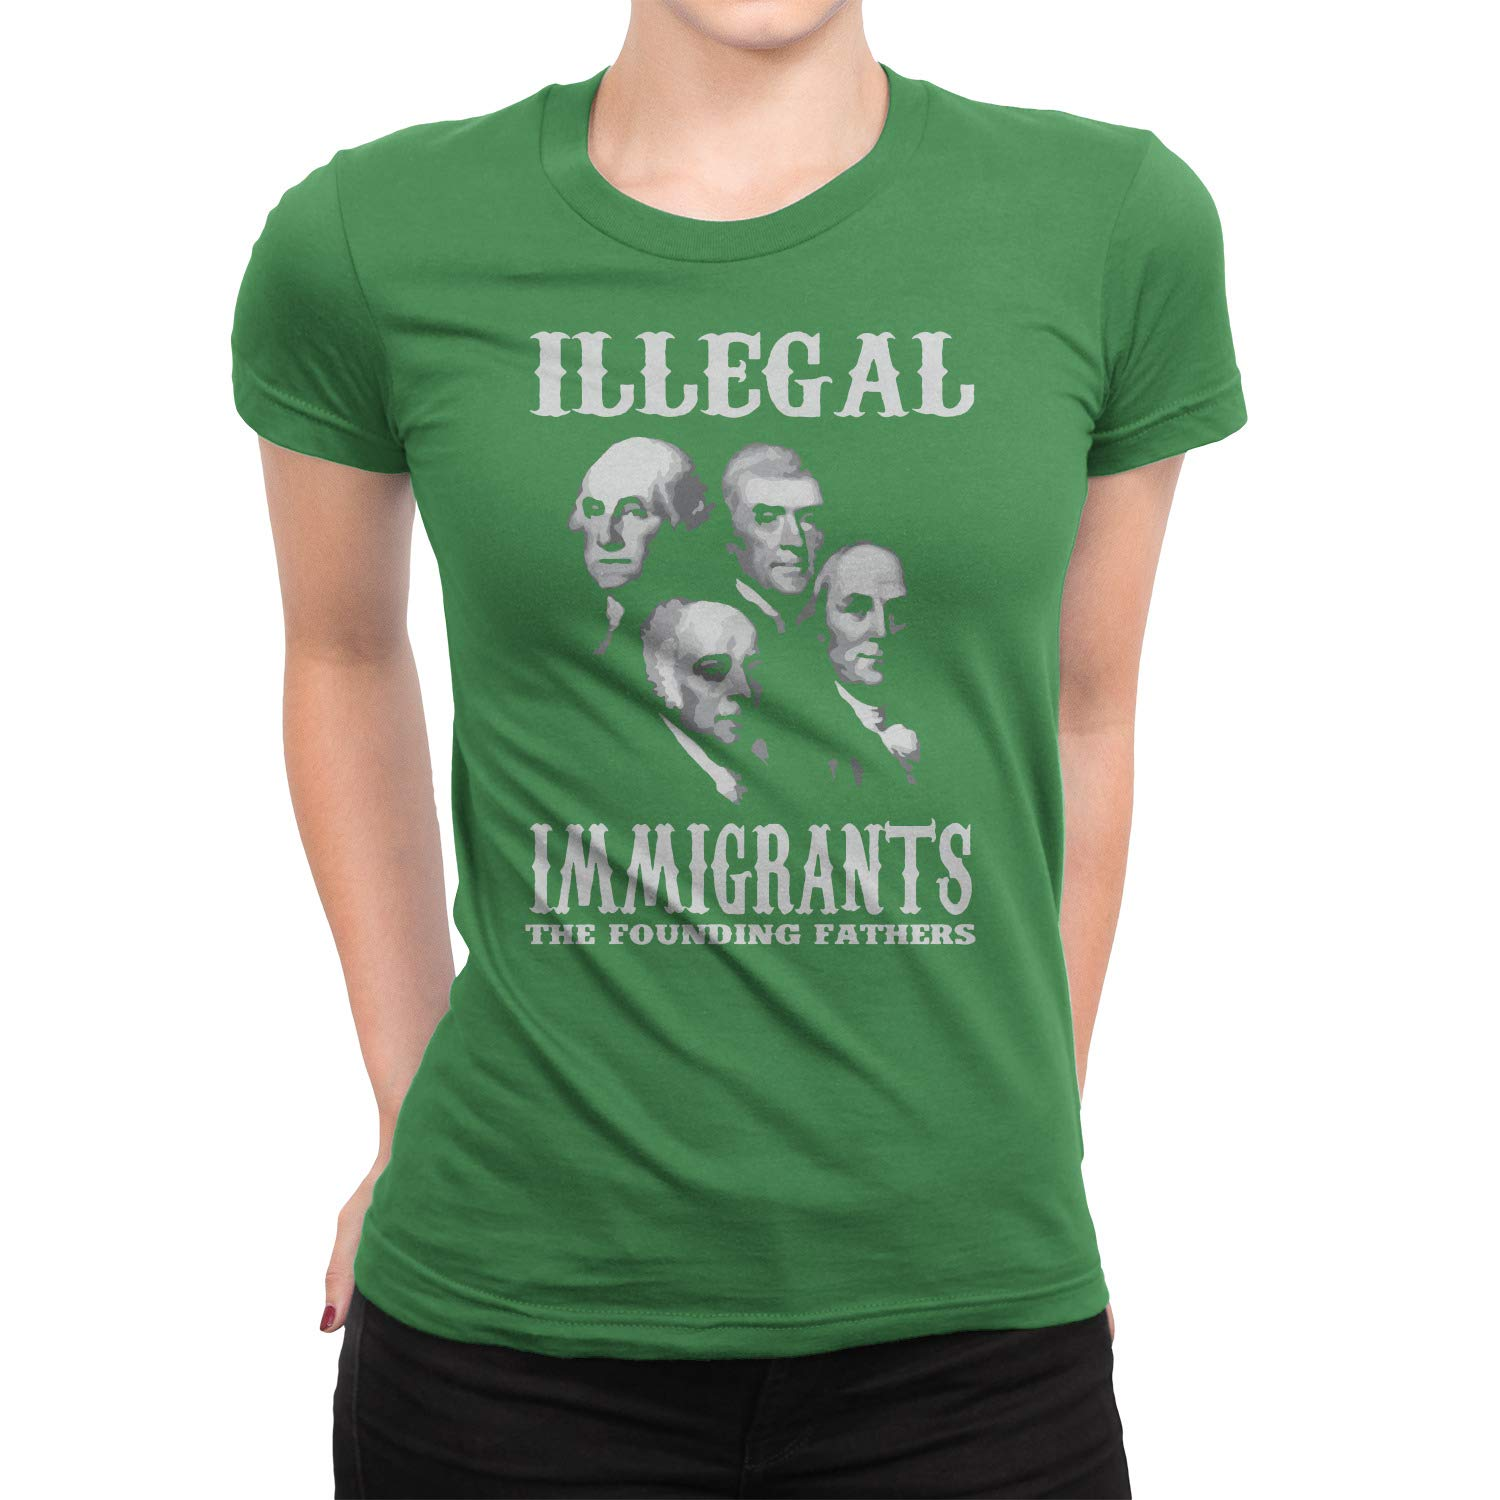 Illegal Immigrants The Founding Fathers Shirt Immigrant Merica United State Pride Tshirt T-Shirt